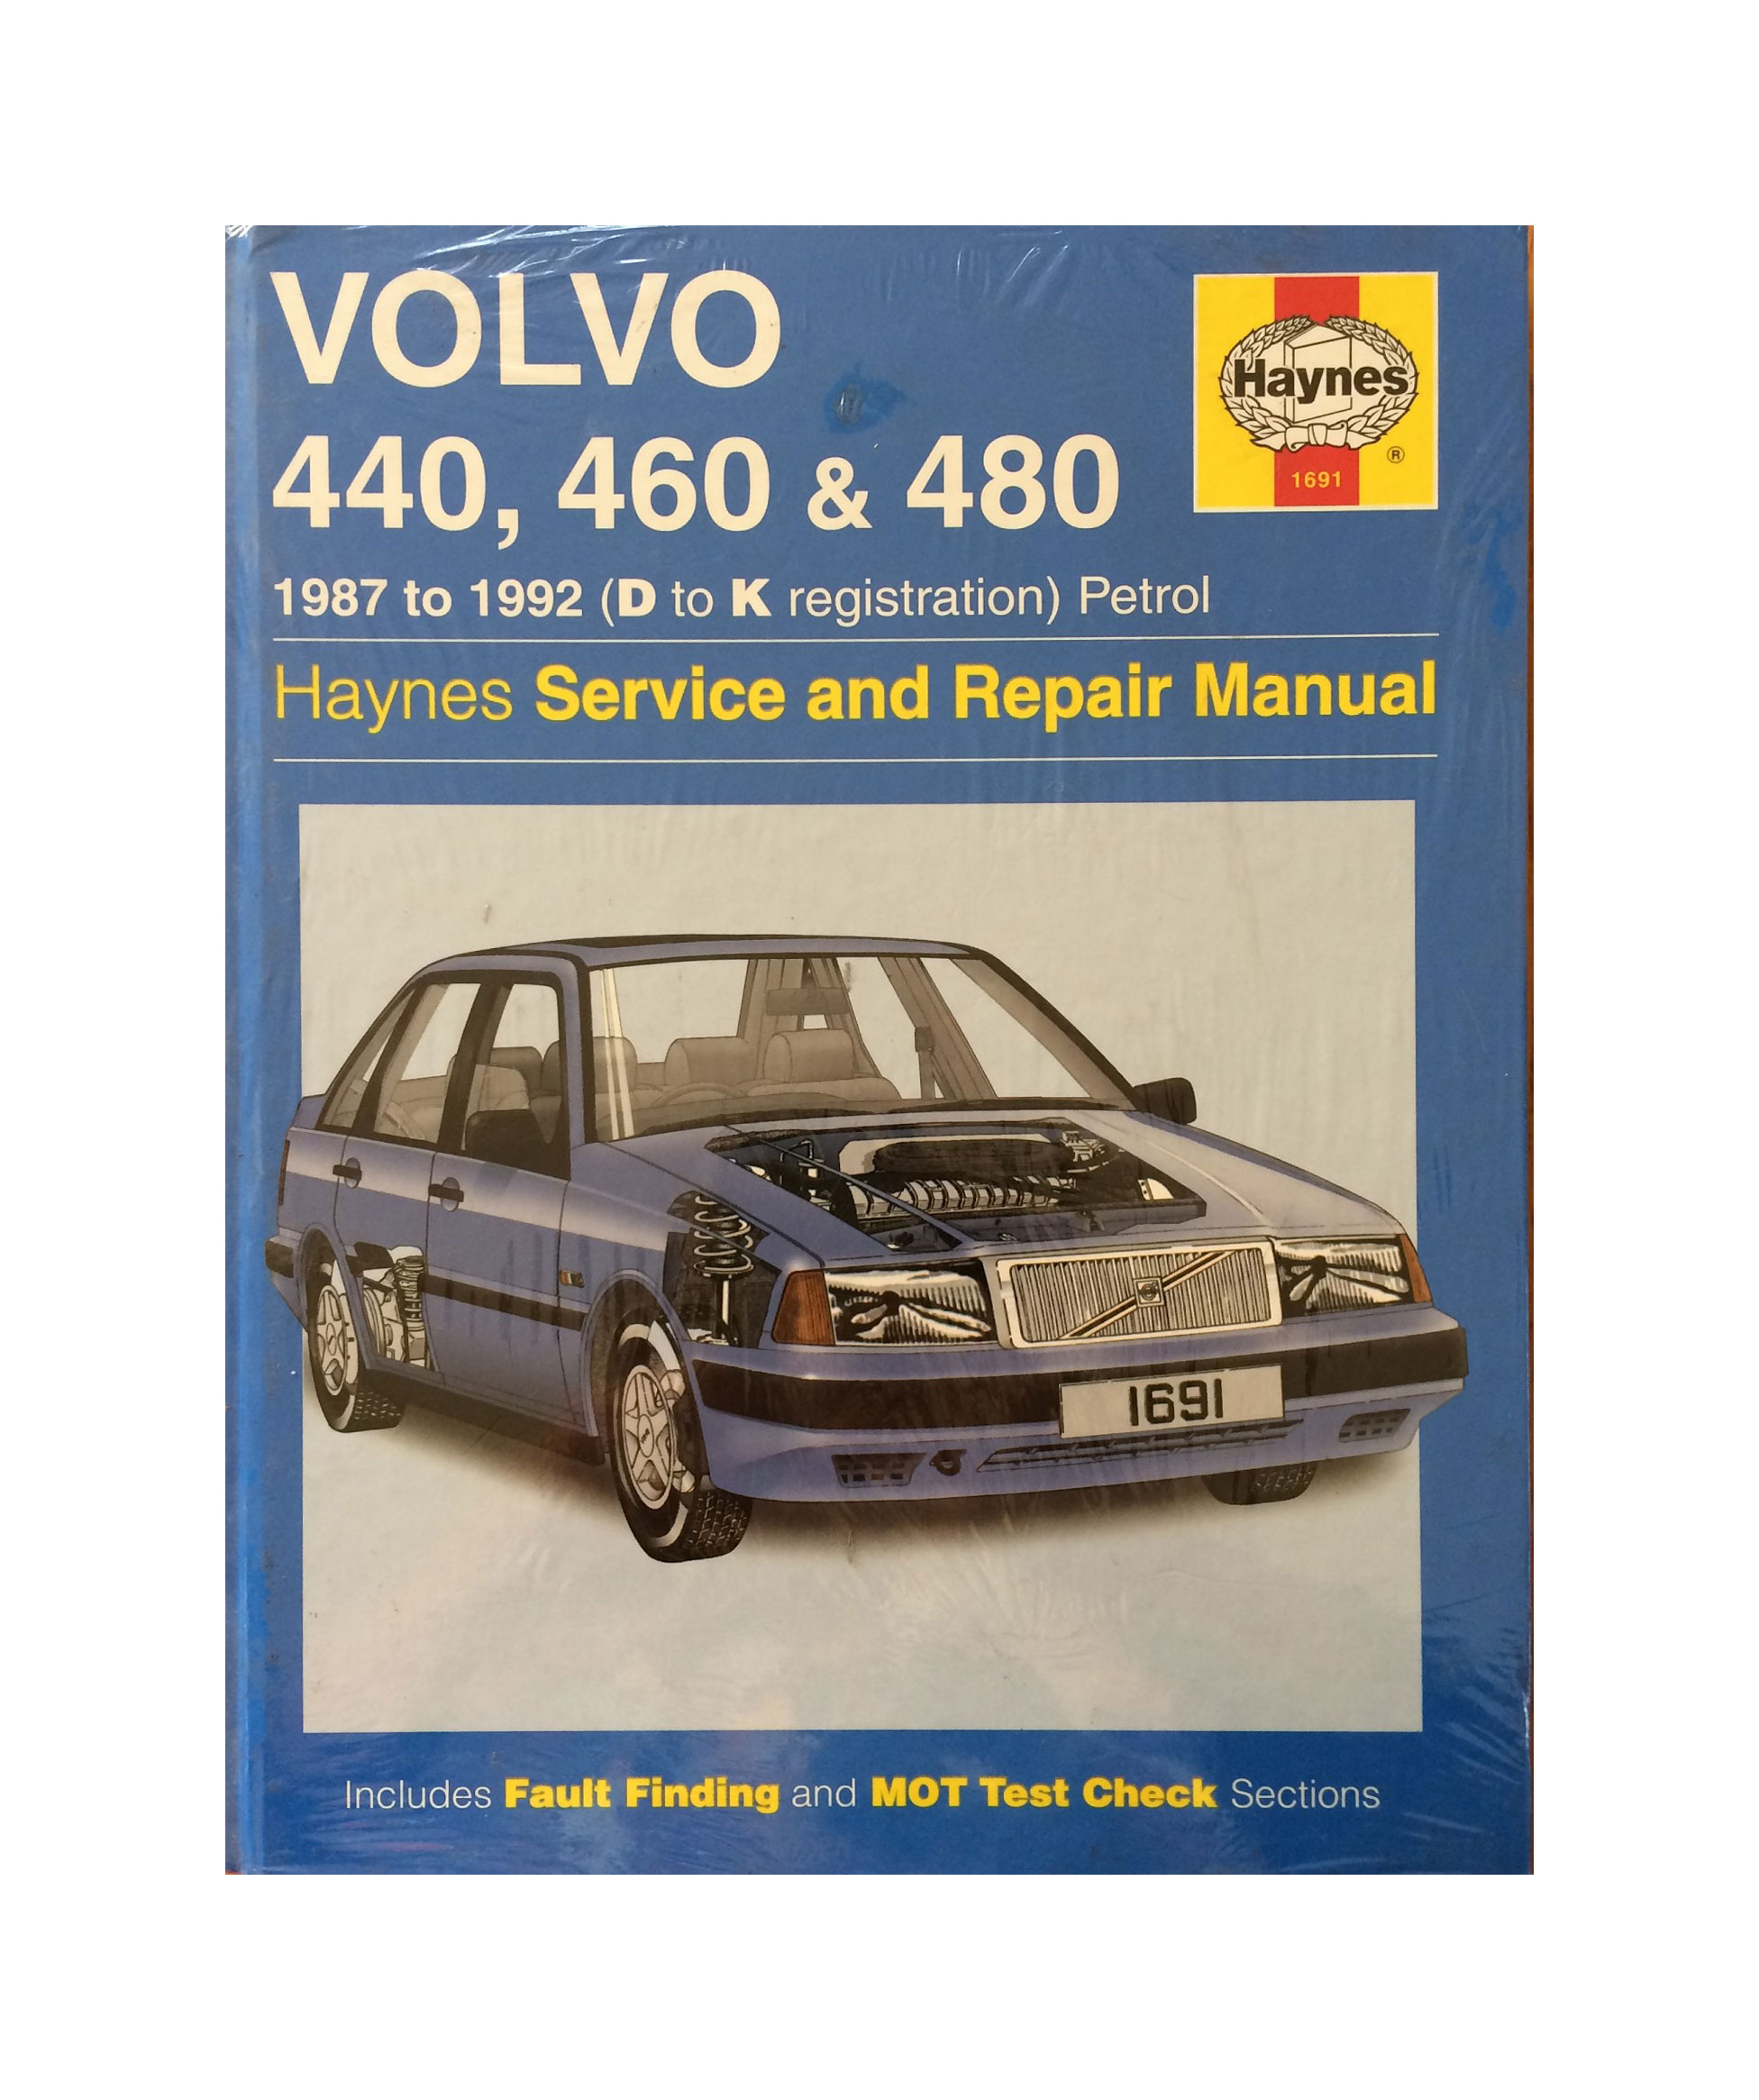 volvo haynes service and repair manual mollies classics rh molliesclassics com 1987 volvo 740 gle owners manual 1986 Volvo